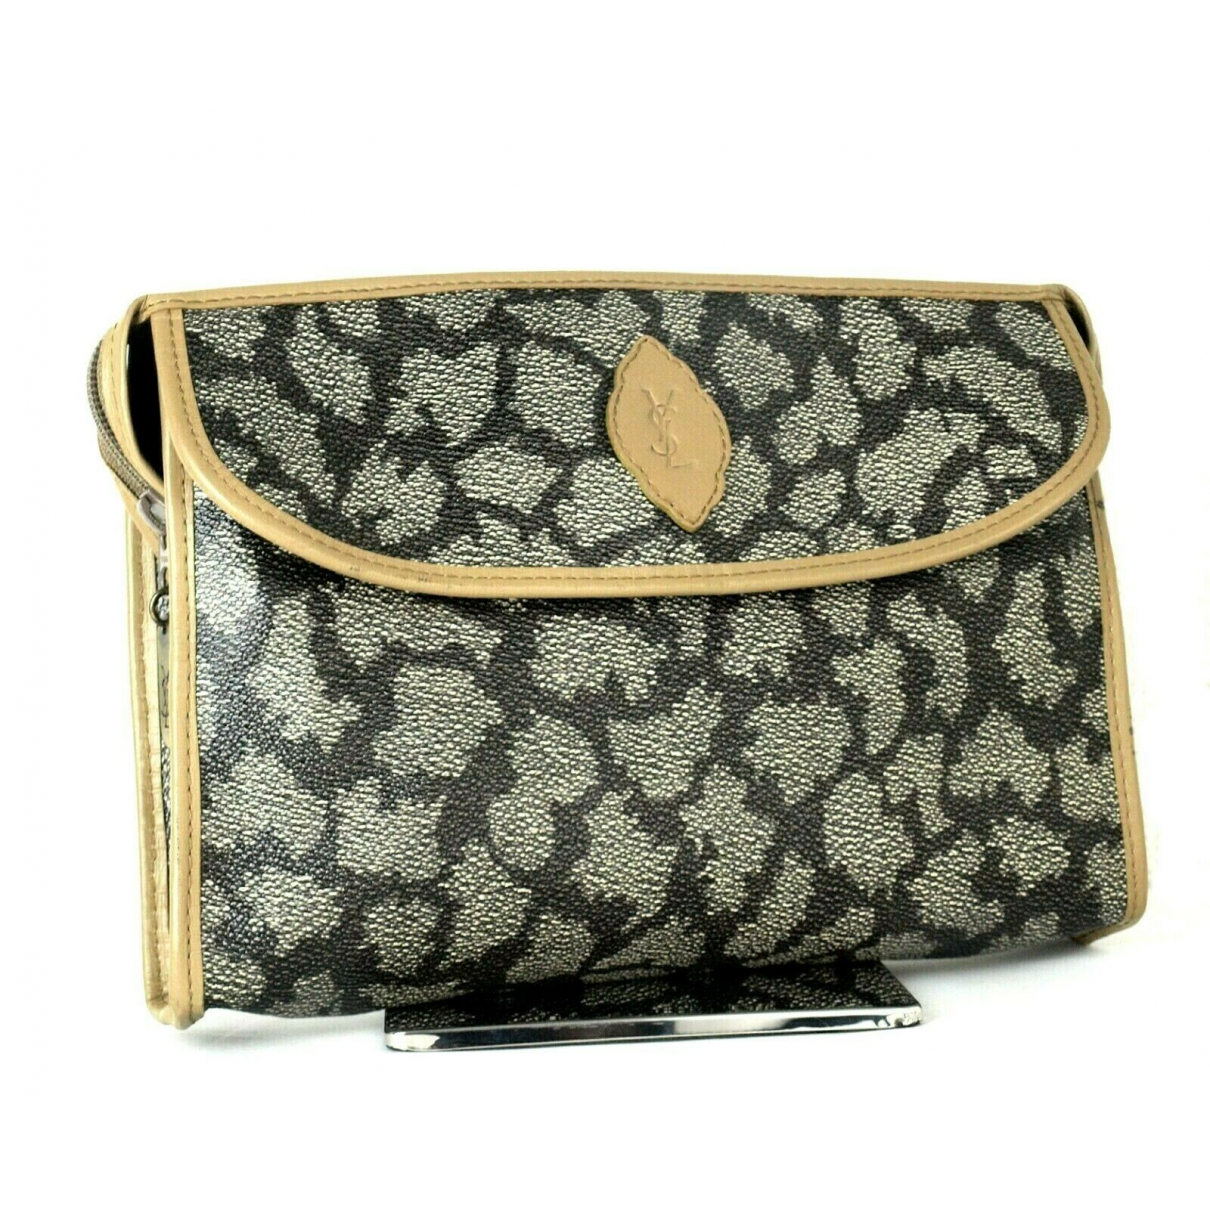 Yves Saint Laurent \N Leather Clutch bag for Women \N